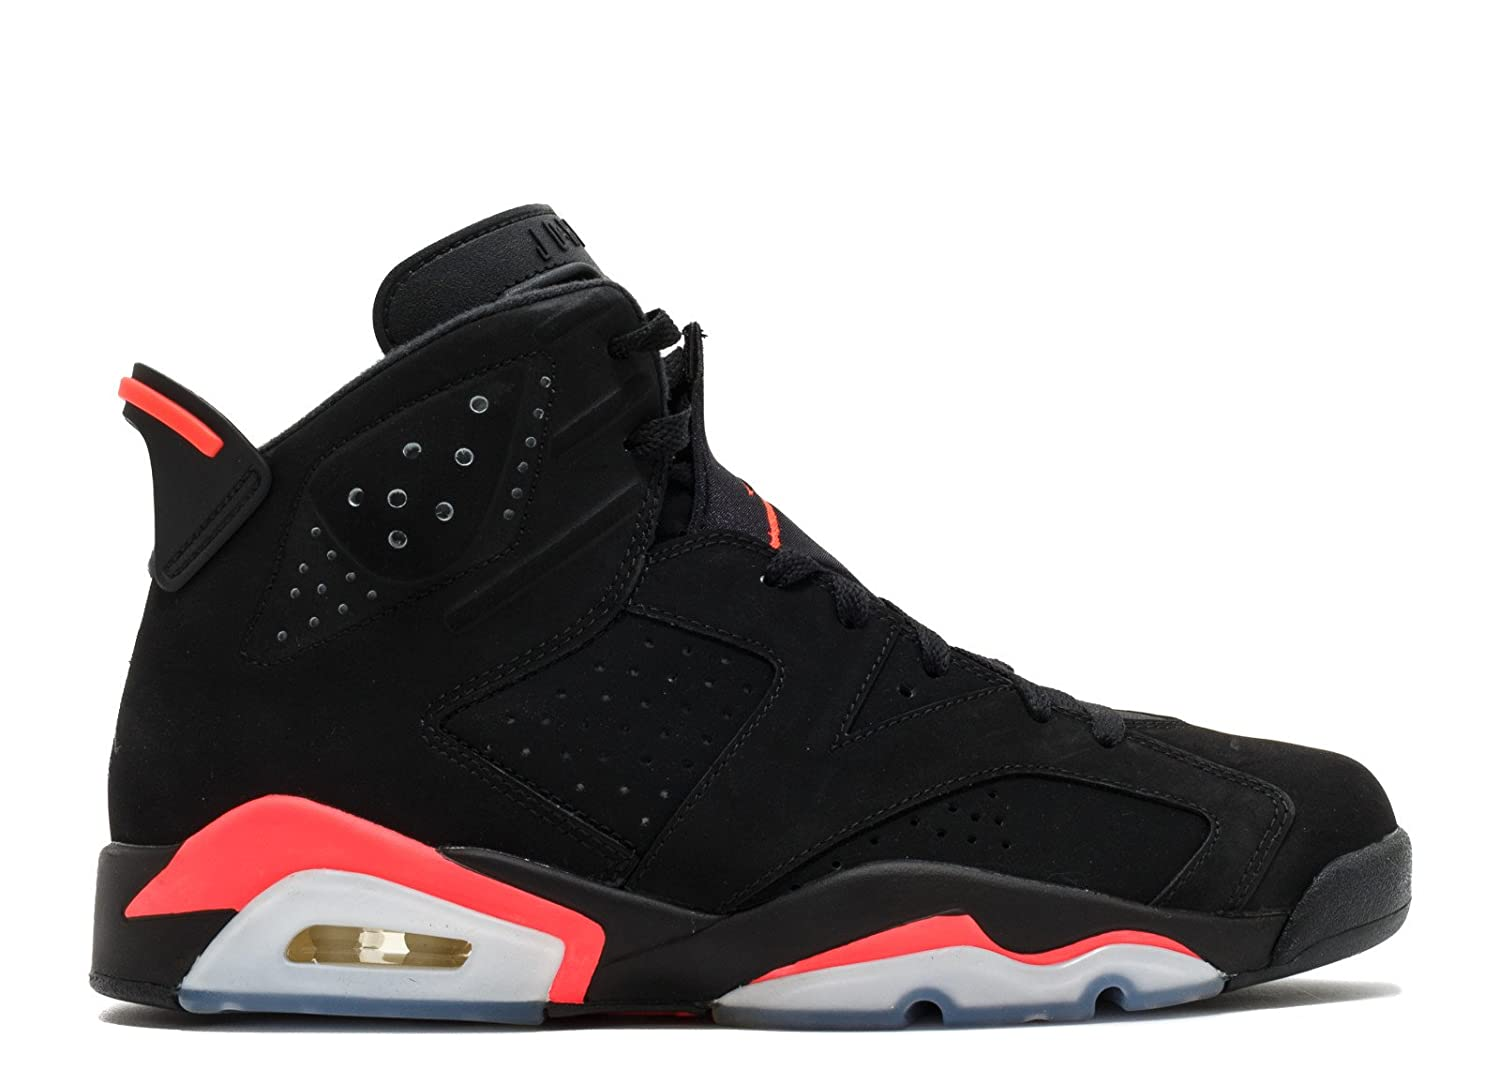 8e0c567fb93 Jordan Unisex Black Air 6 Retro Infrared Shoes -13.5 M: Amazon.in:  Electronics